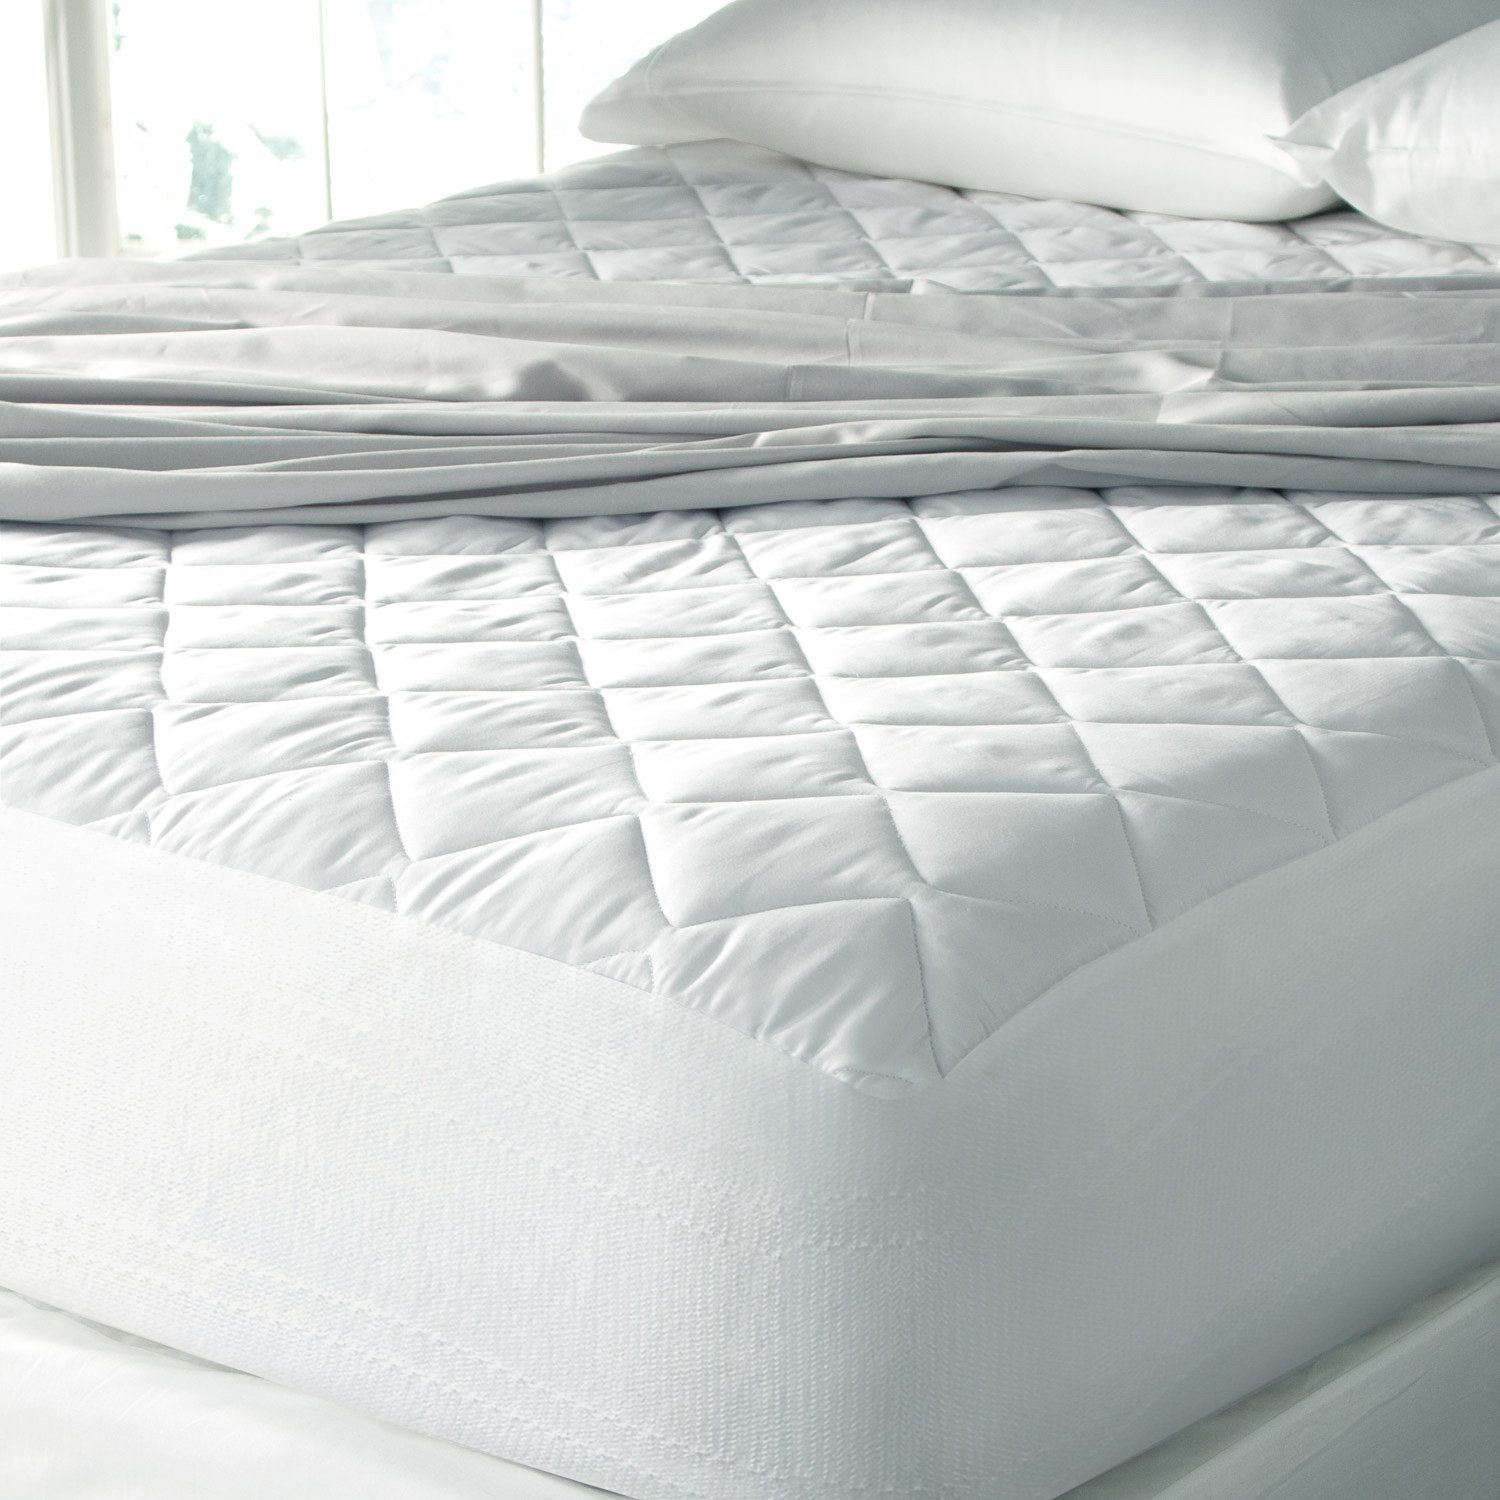 SPA Luxury  Cool Touch Moisture Wicking Mattress Pad - Made In The USA (Queen 60'' x 80'')